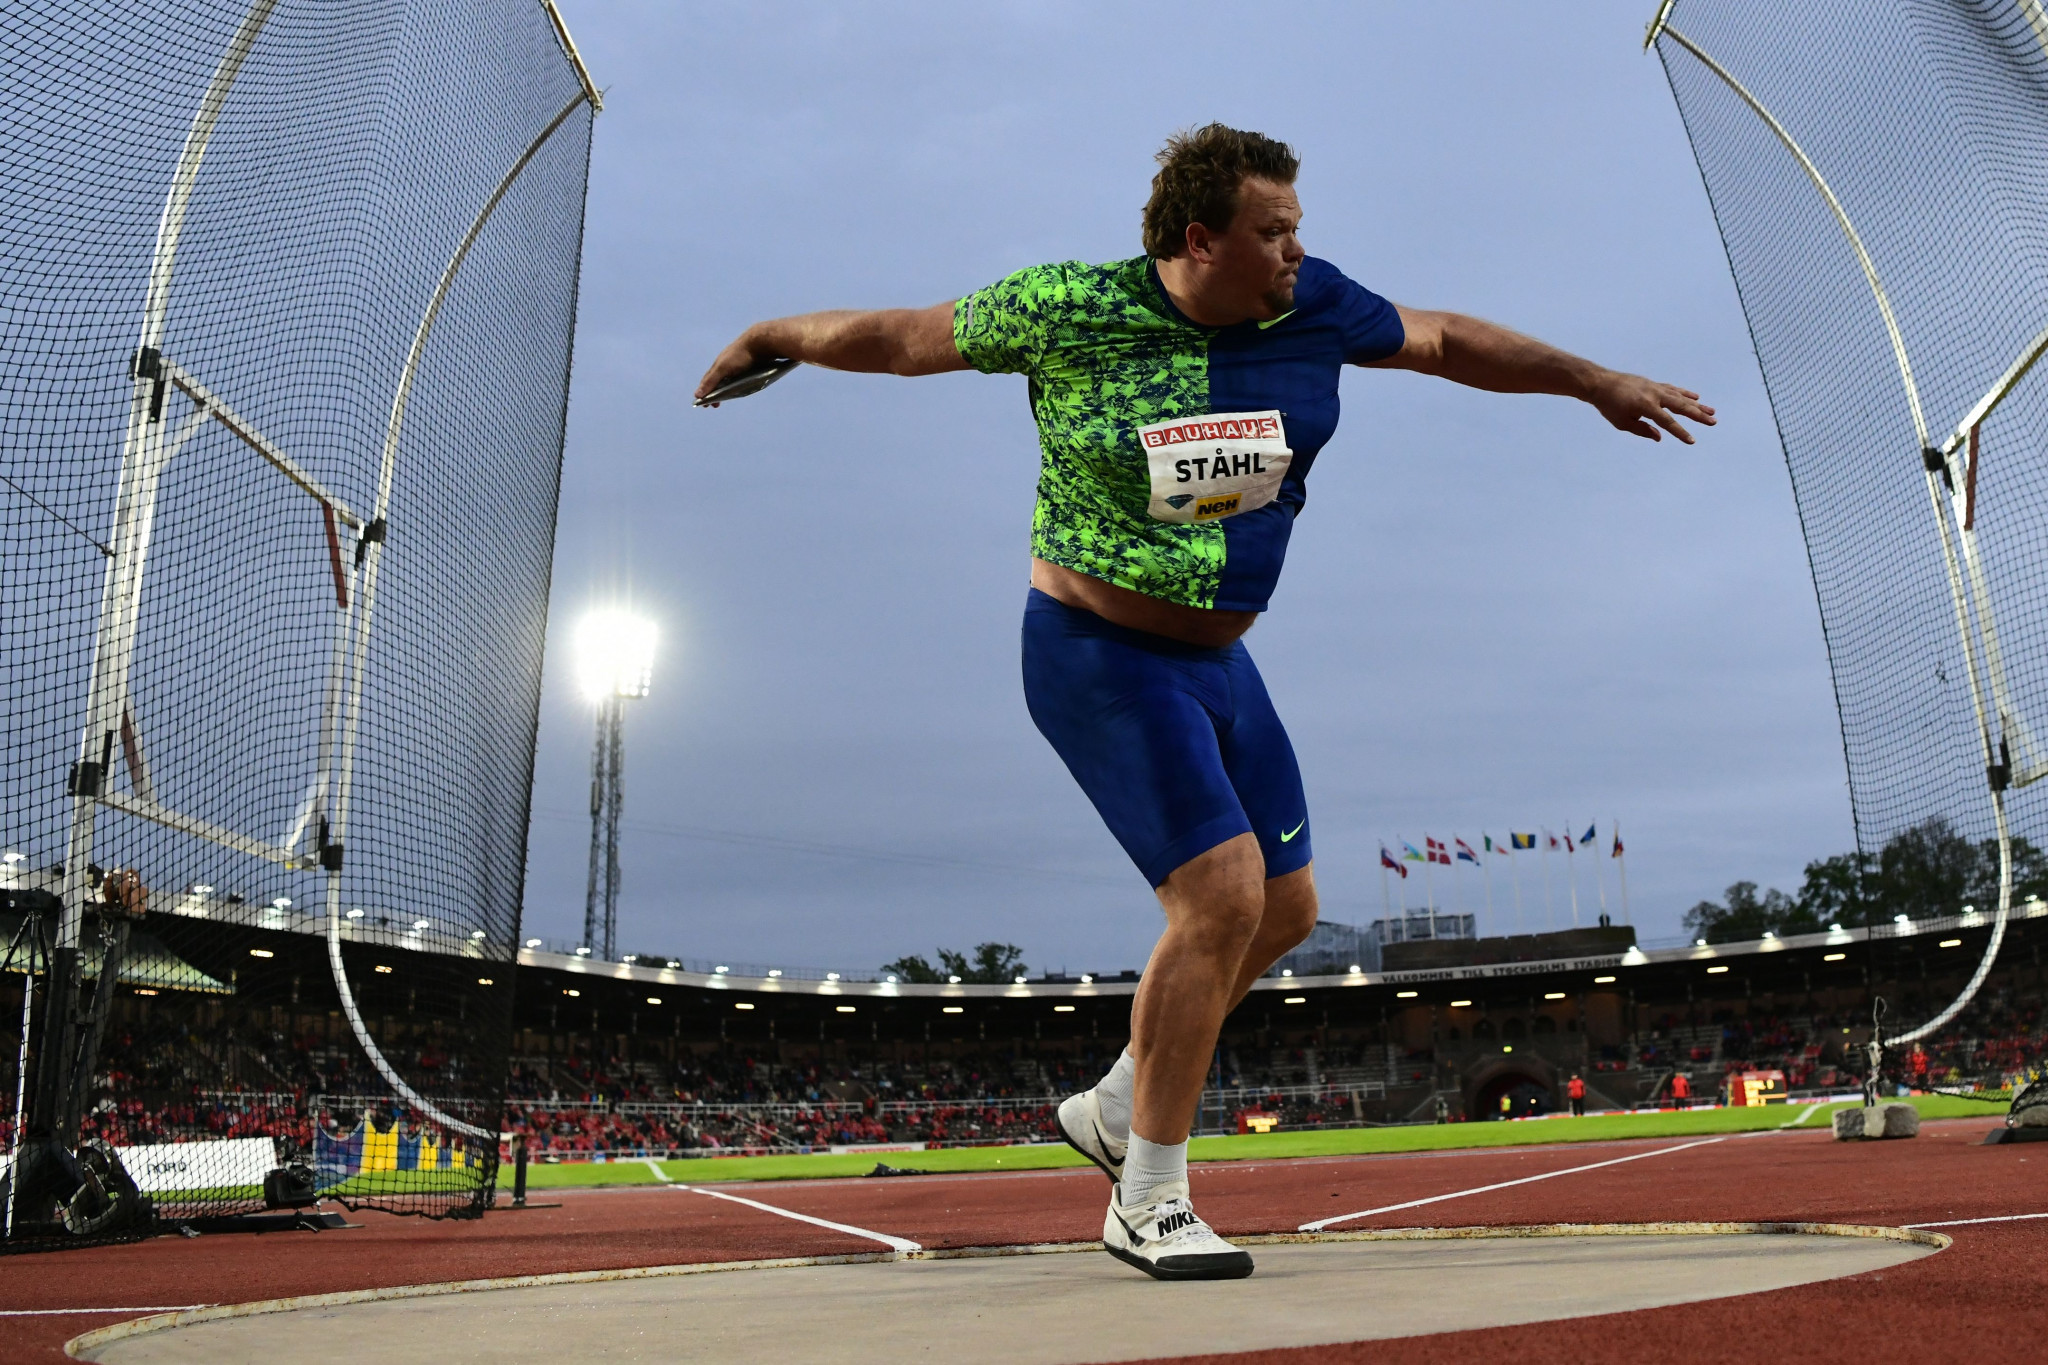 Home discus thrower Daniel Stahl had another big win at the IAAF Diamond League meeting in Stockholm tonight  ©Getty Images